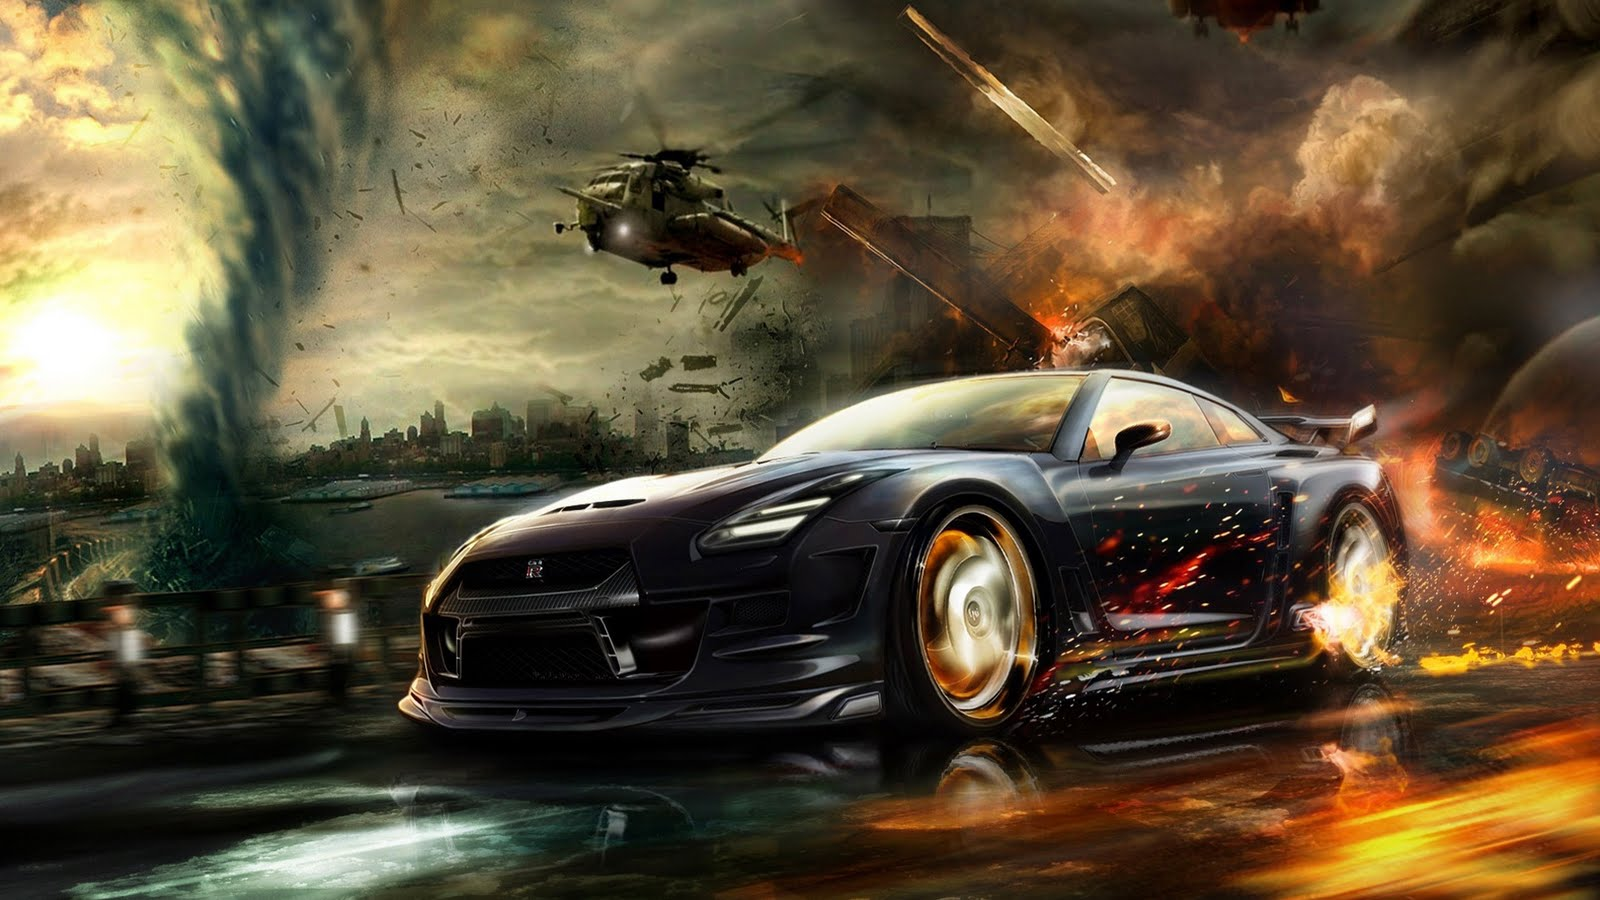 Epic Car Wallpapers: Celebrity Cars Wallpapers